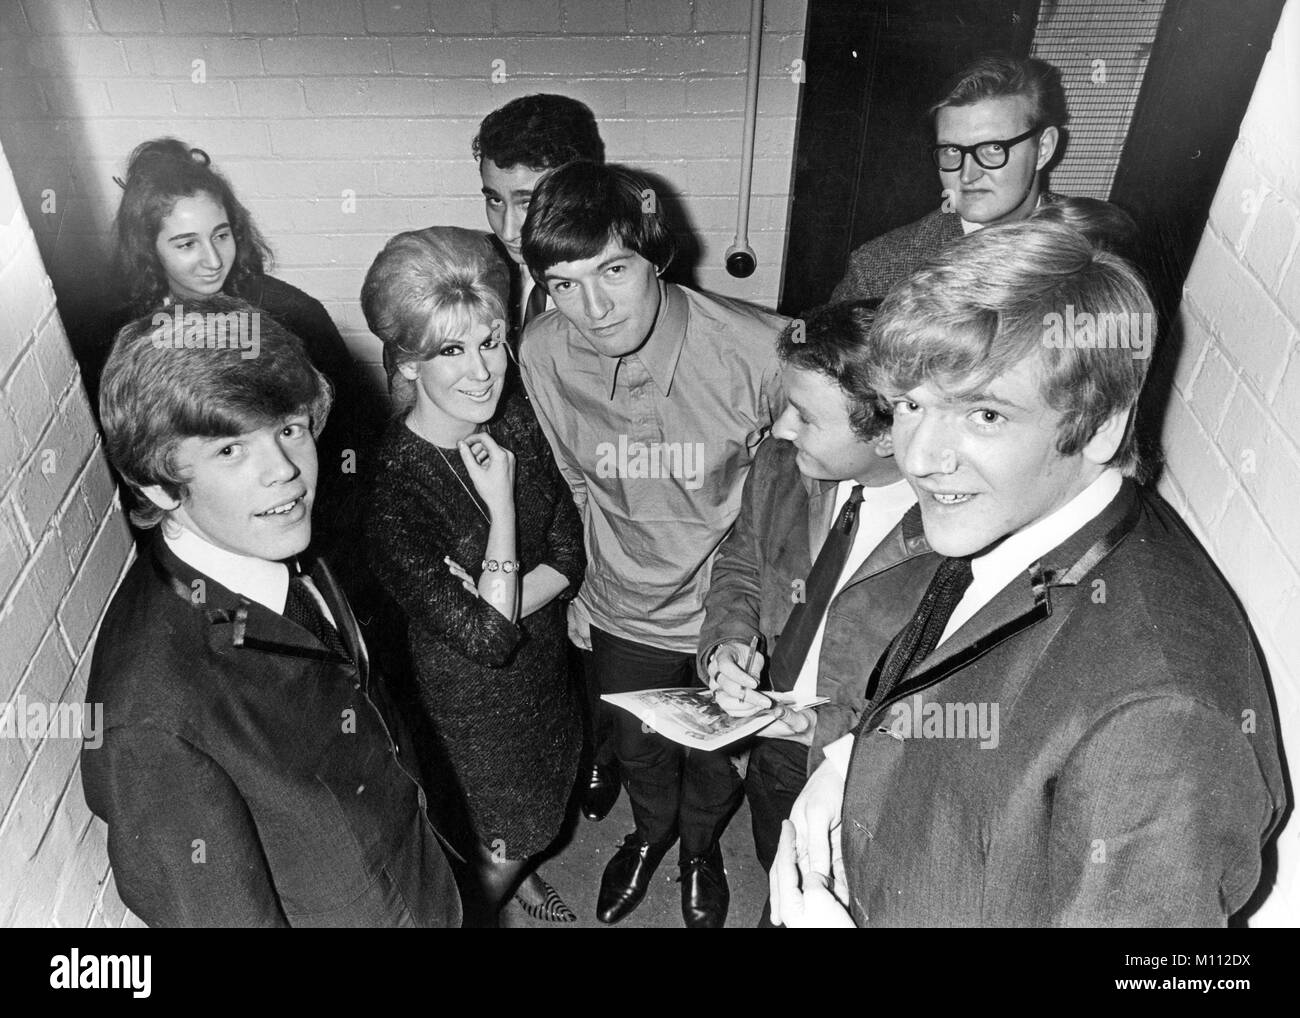 DUSTY SPRINGFIELD (1939-1999) English singer about 1968 with from left: Herman Noone, Dave Berry, Brian Poole (with - Stock Image